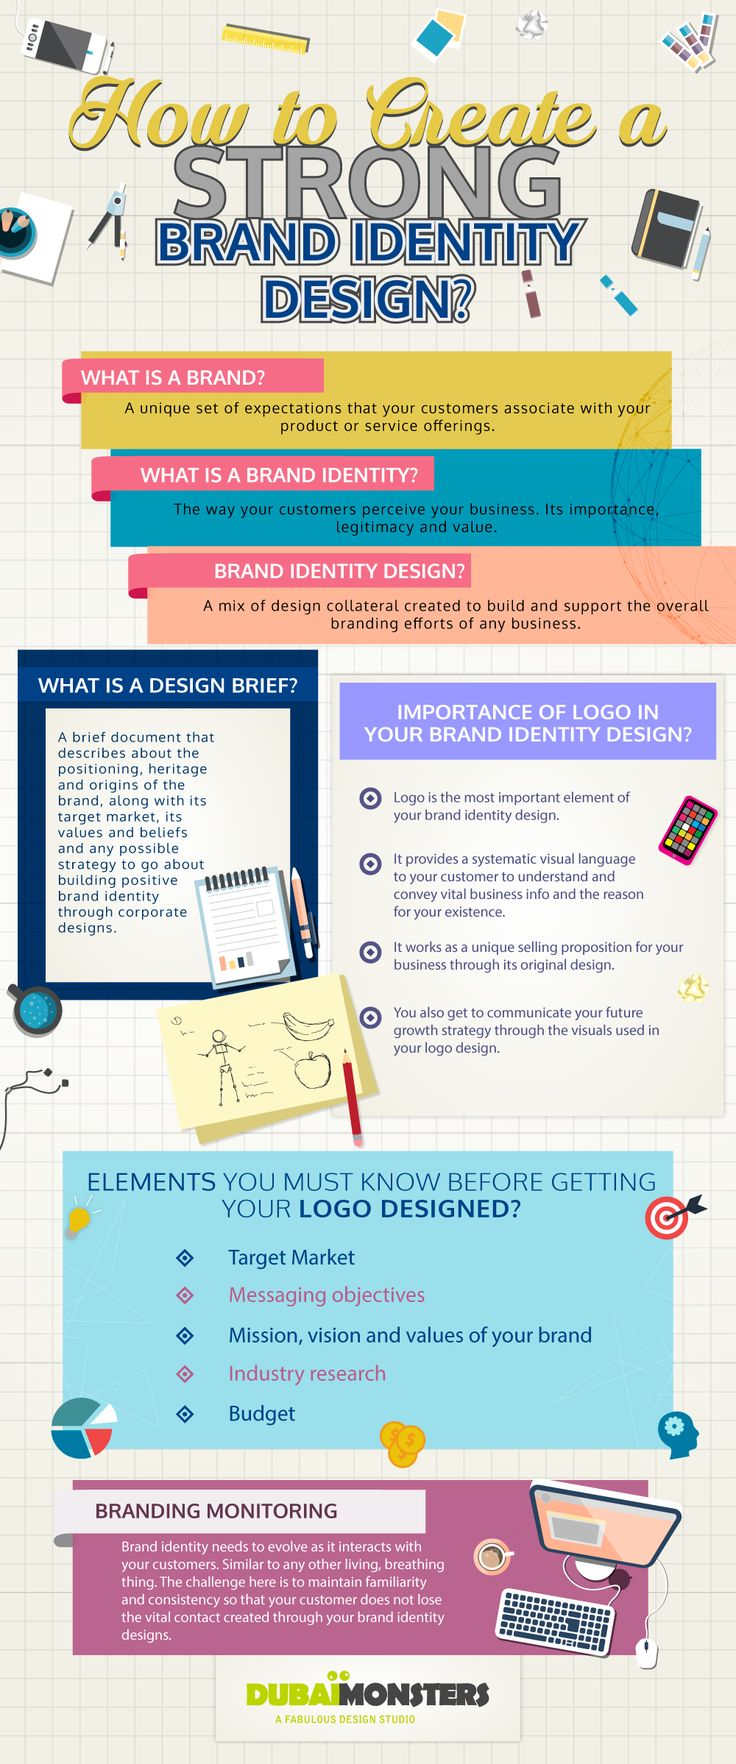 How to create a strong brand identity design infographic